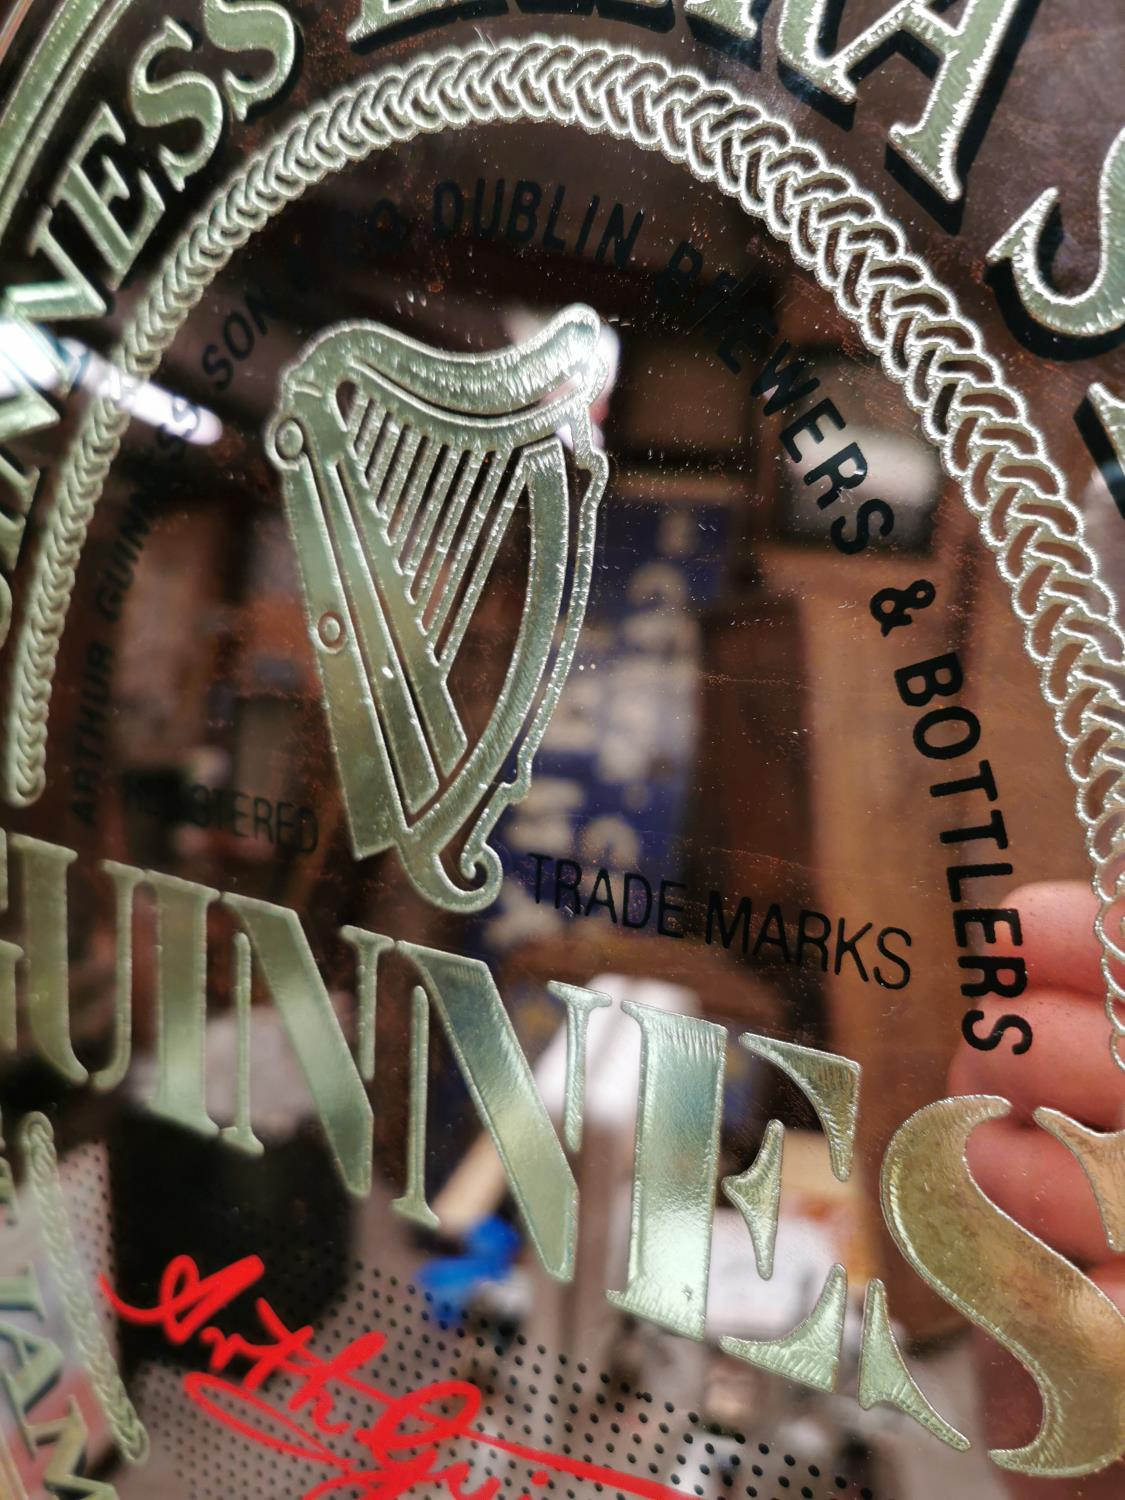 Guinness St. James Gate advertising mirror. - Image 2 of 2